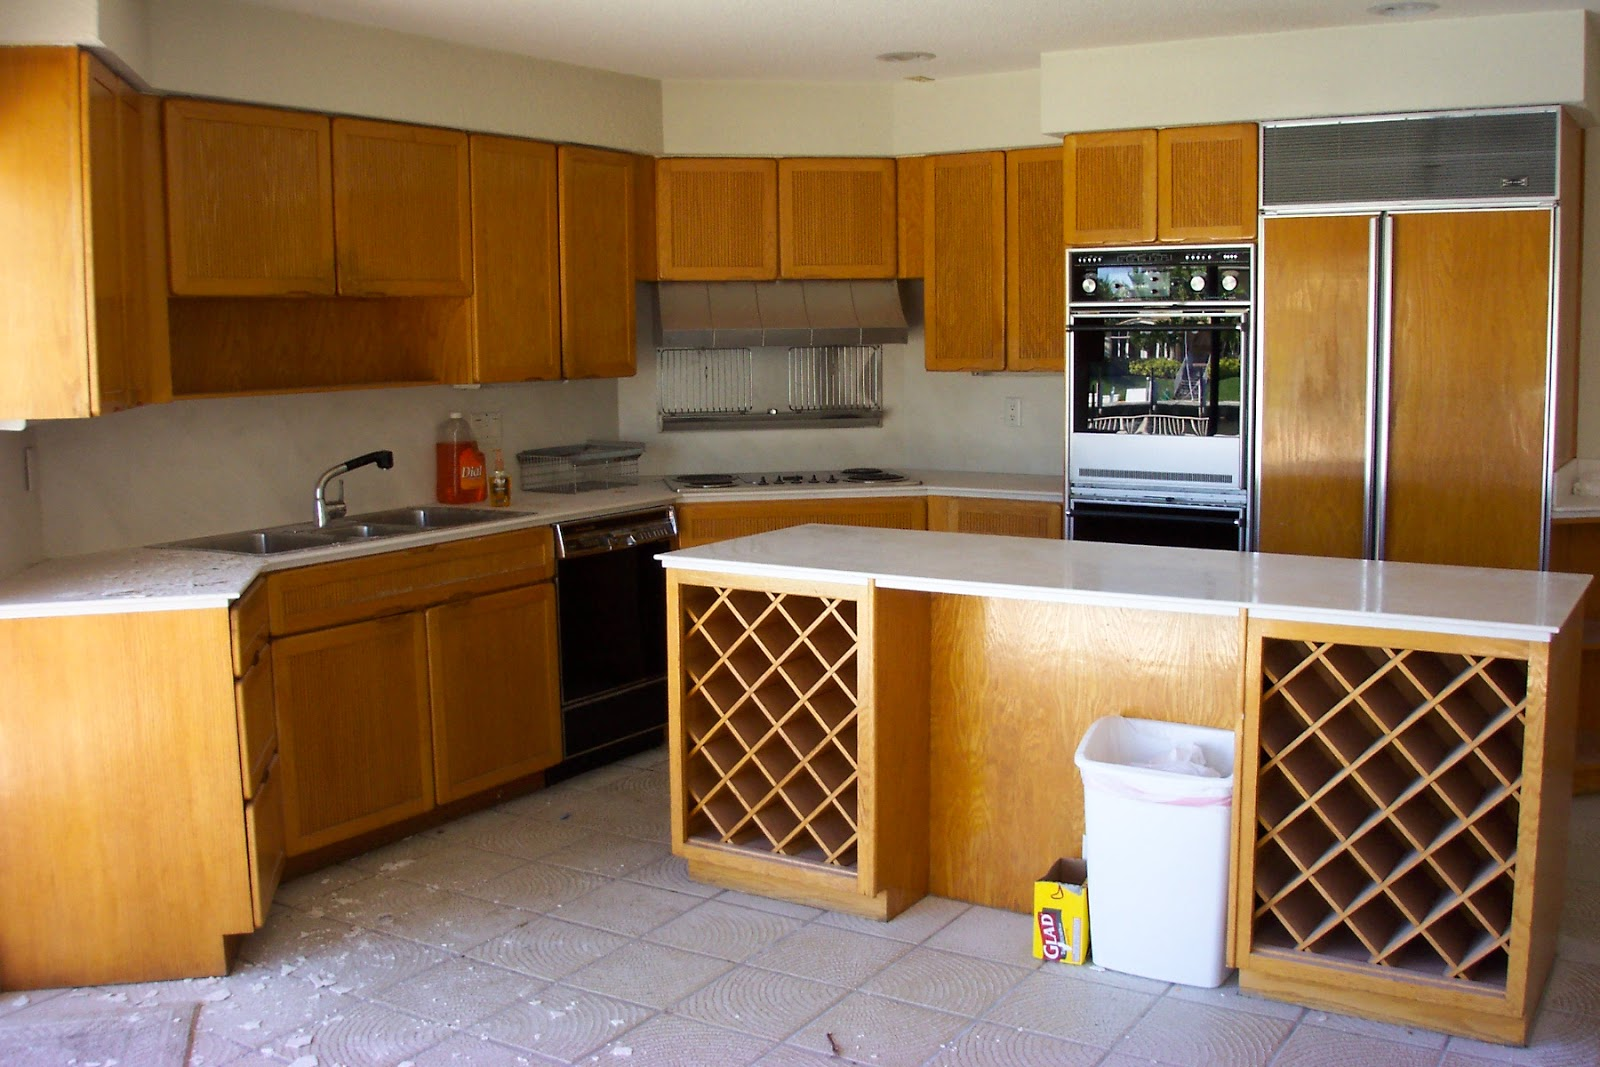 Refinish kitchen cabinets charlotte nc - Here Are Some Common Keywords To Find Us Kitchen Refacing